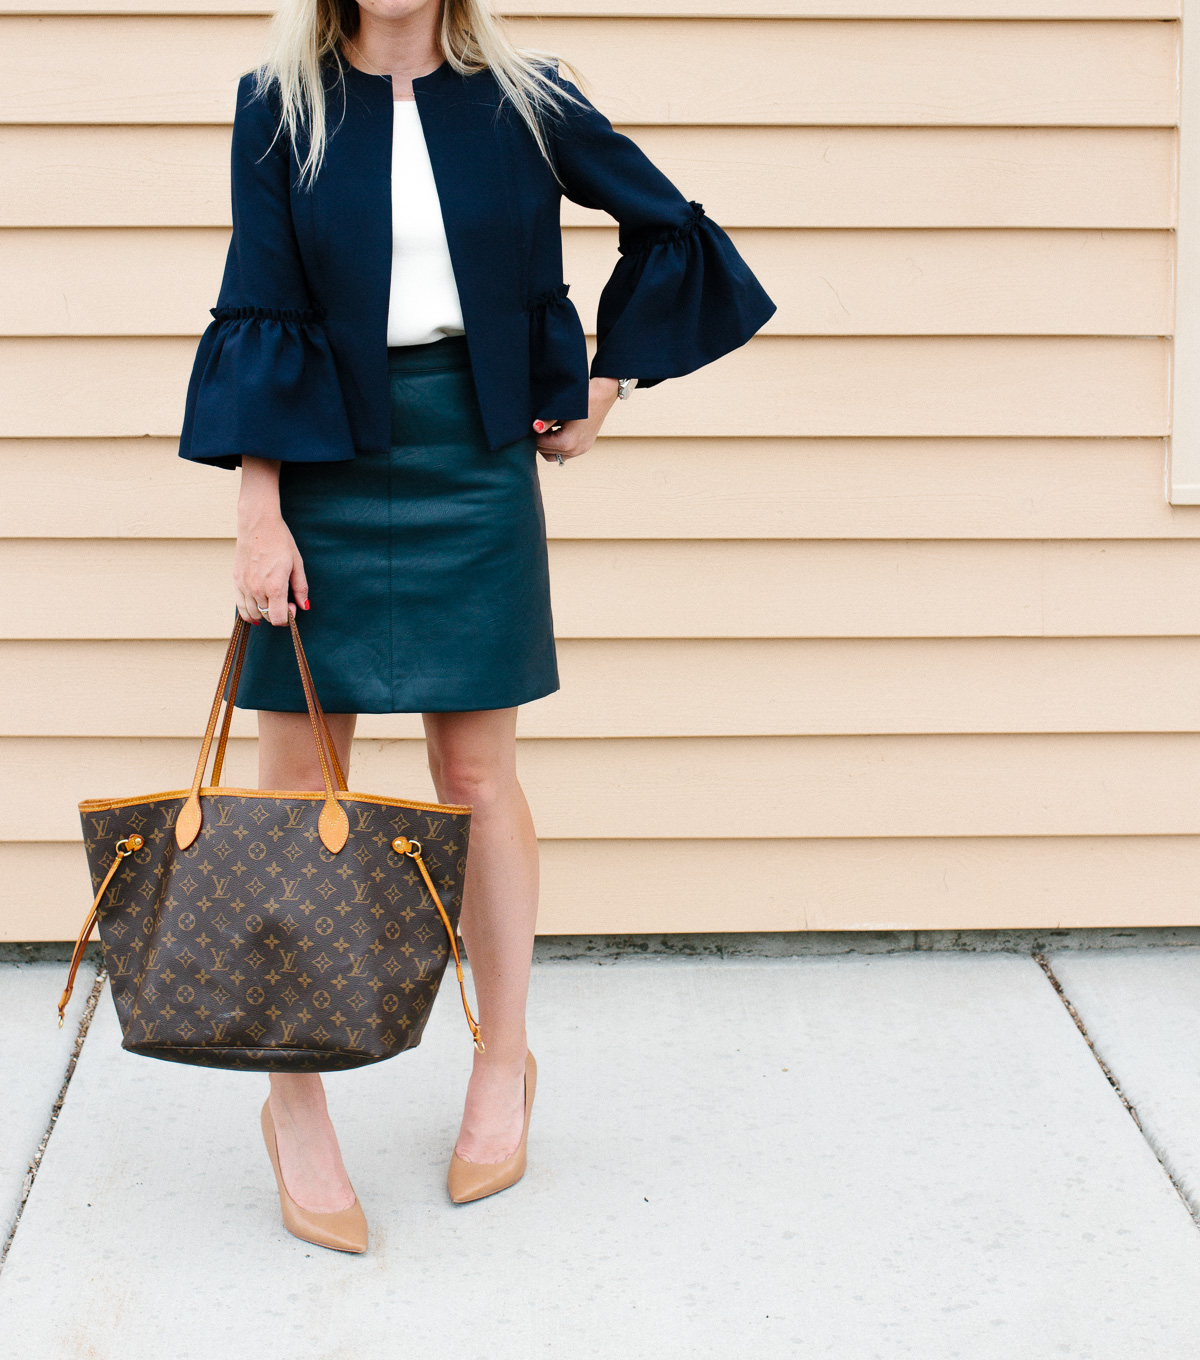 How to Style a Faux Leather Skirt for Work